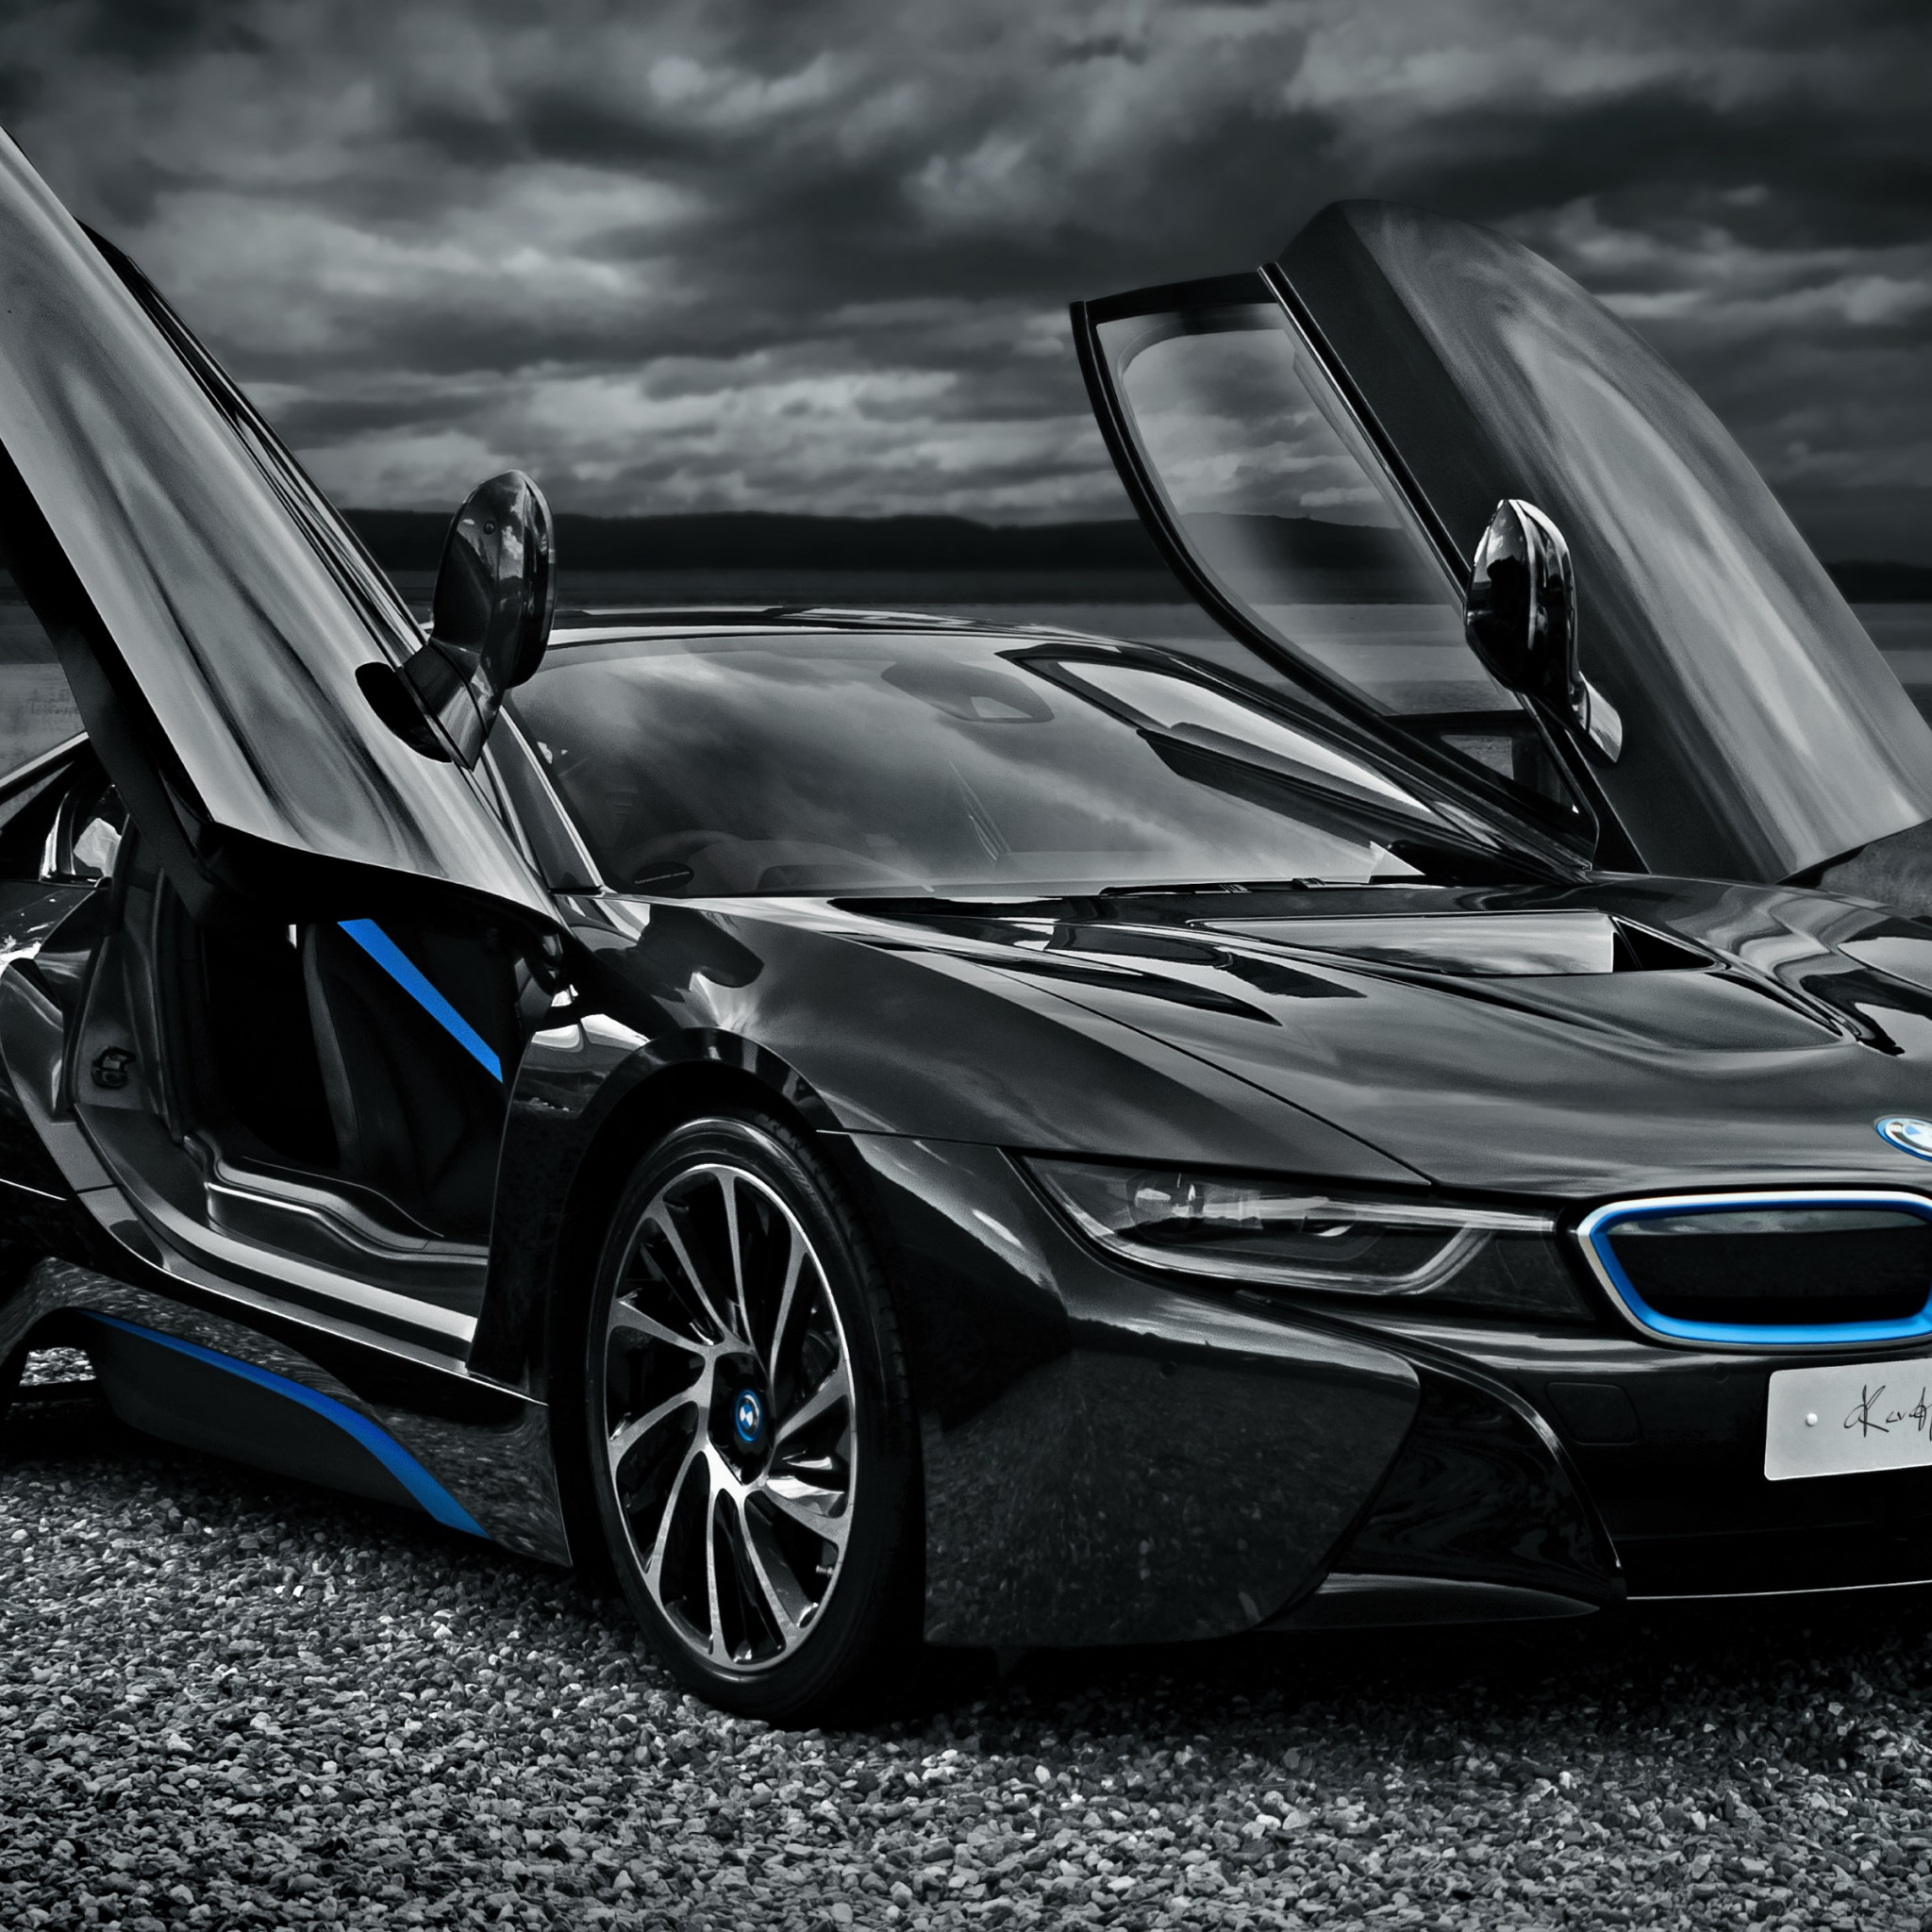 BMW i8 hybrid car wallpaper 2048x2048